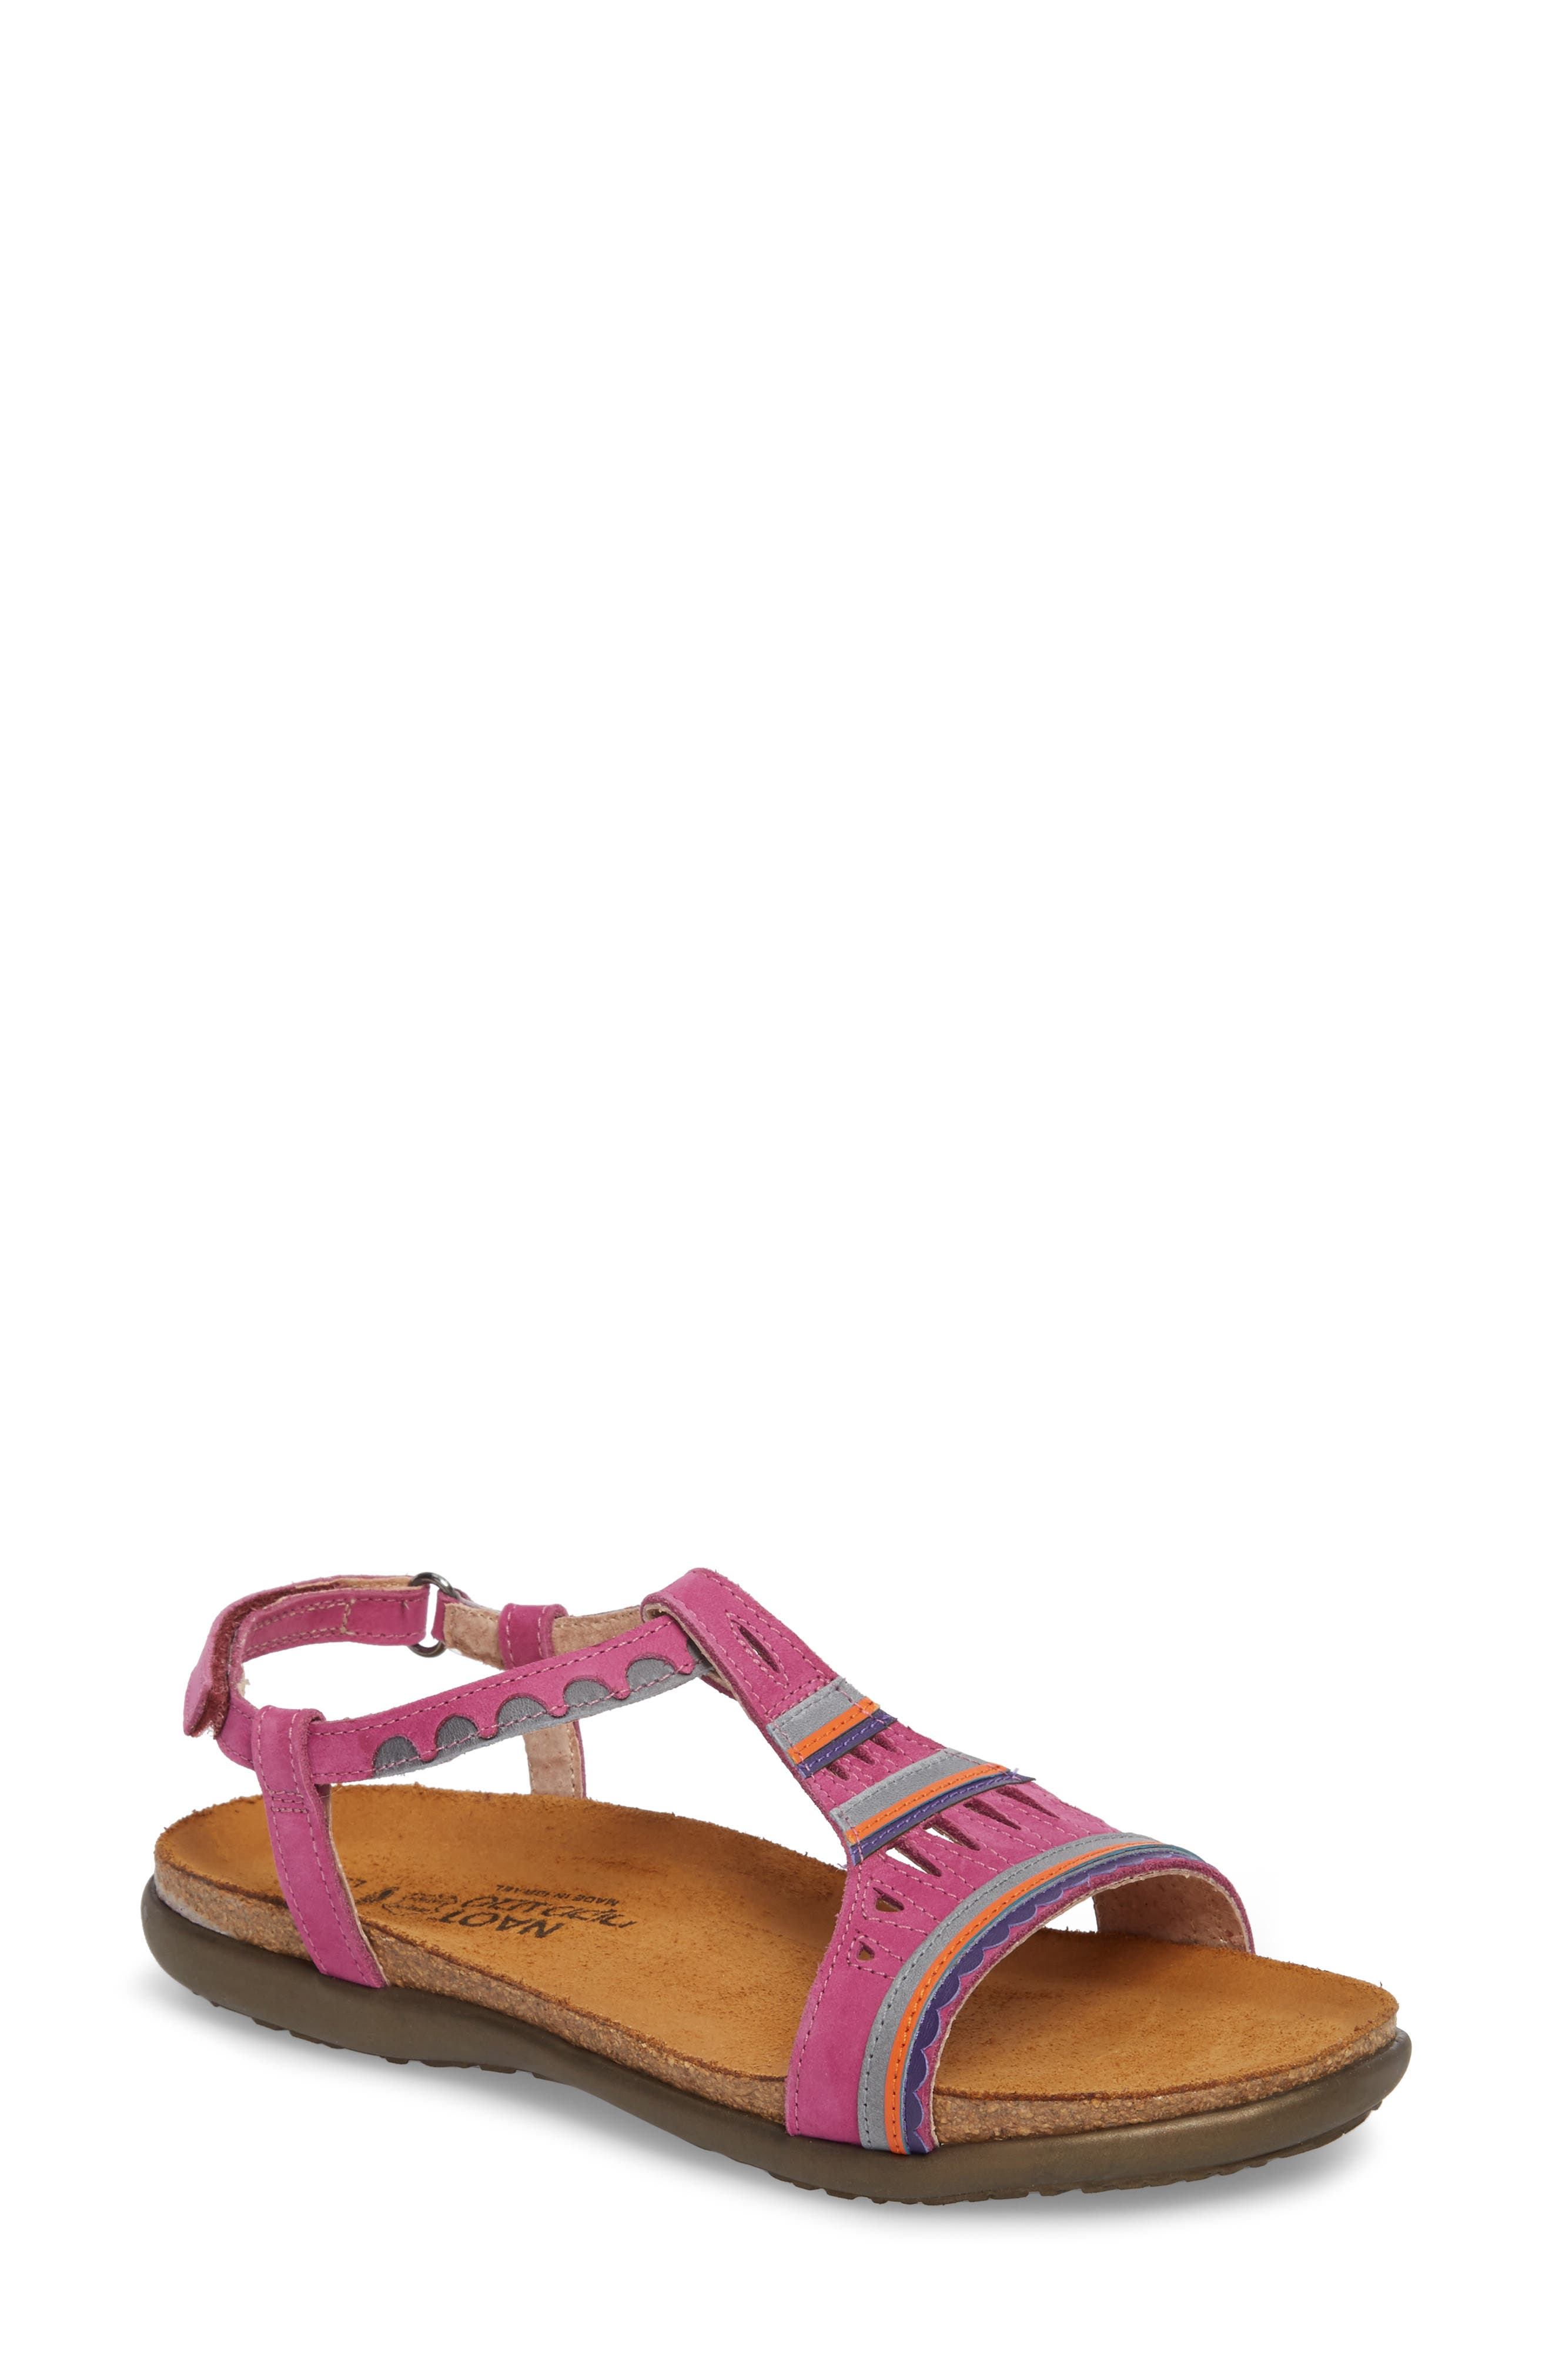 Odelia Perforated T-Strap Sandal,                         Main,                         color, PINK PLUM NUBUCK